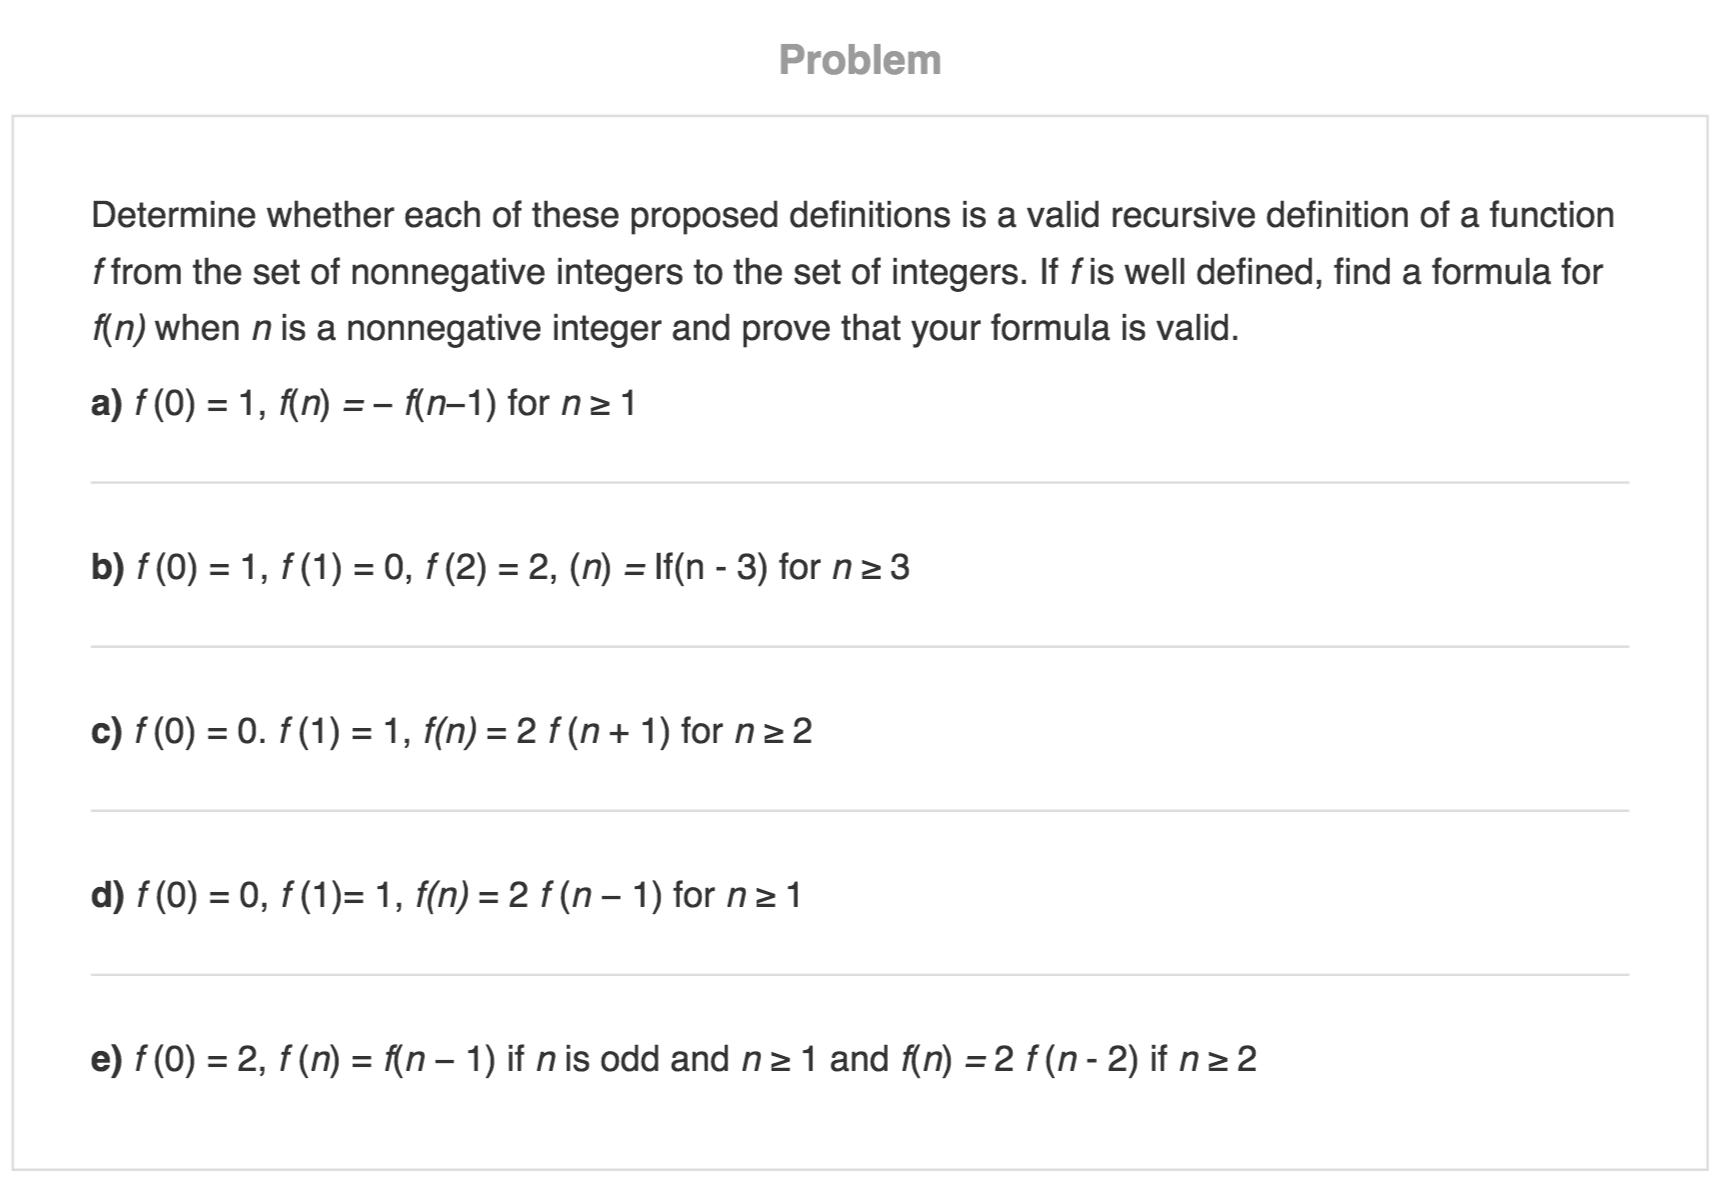 solved: determine whether each of these proposed definitio